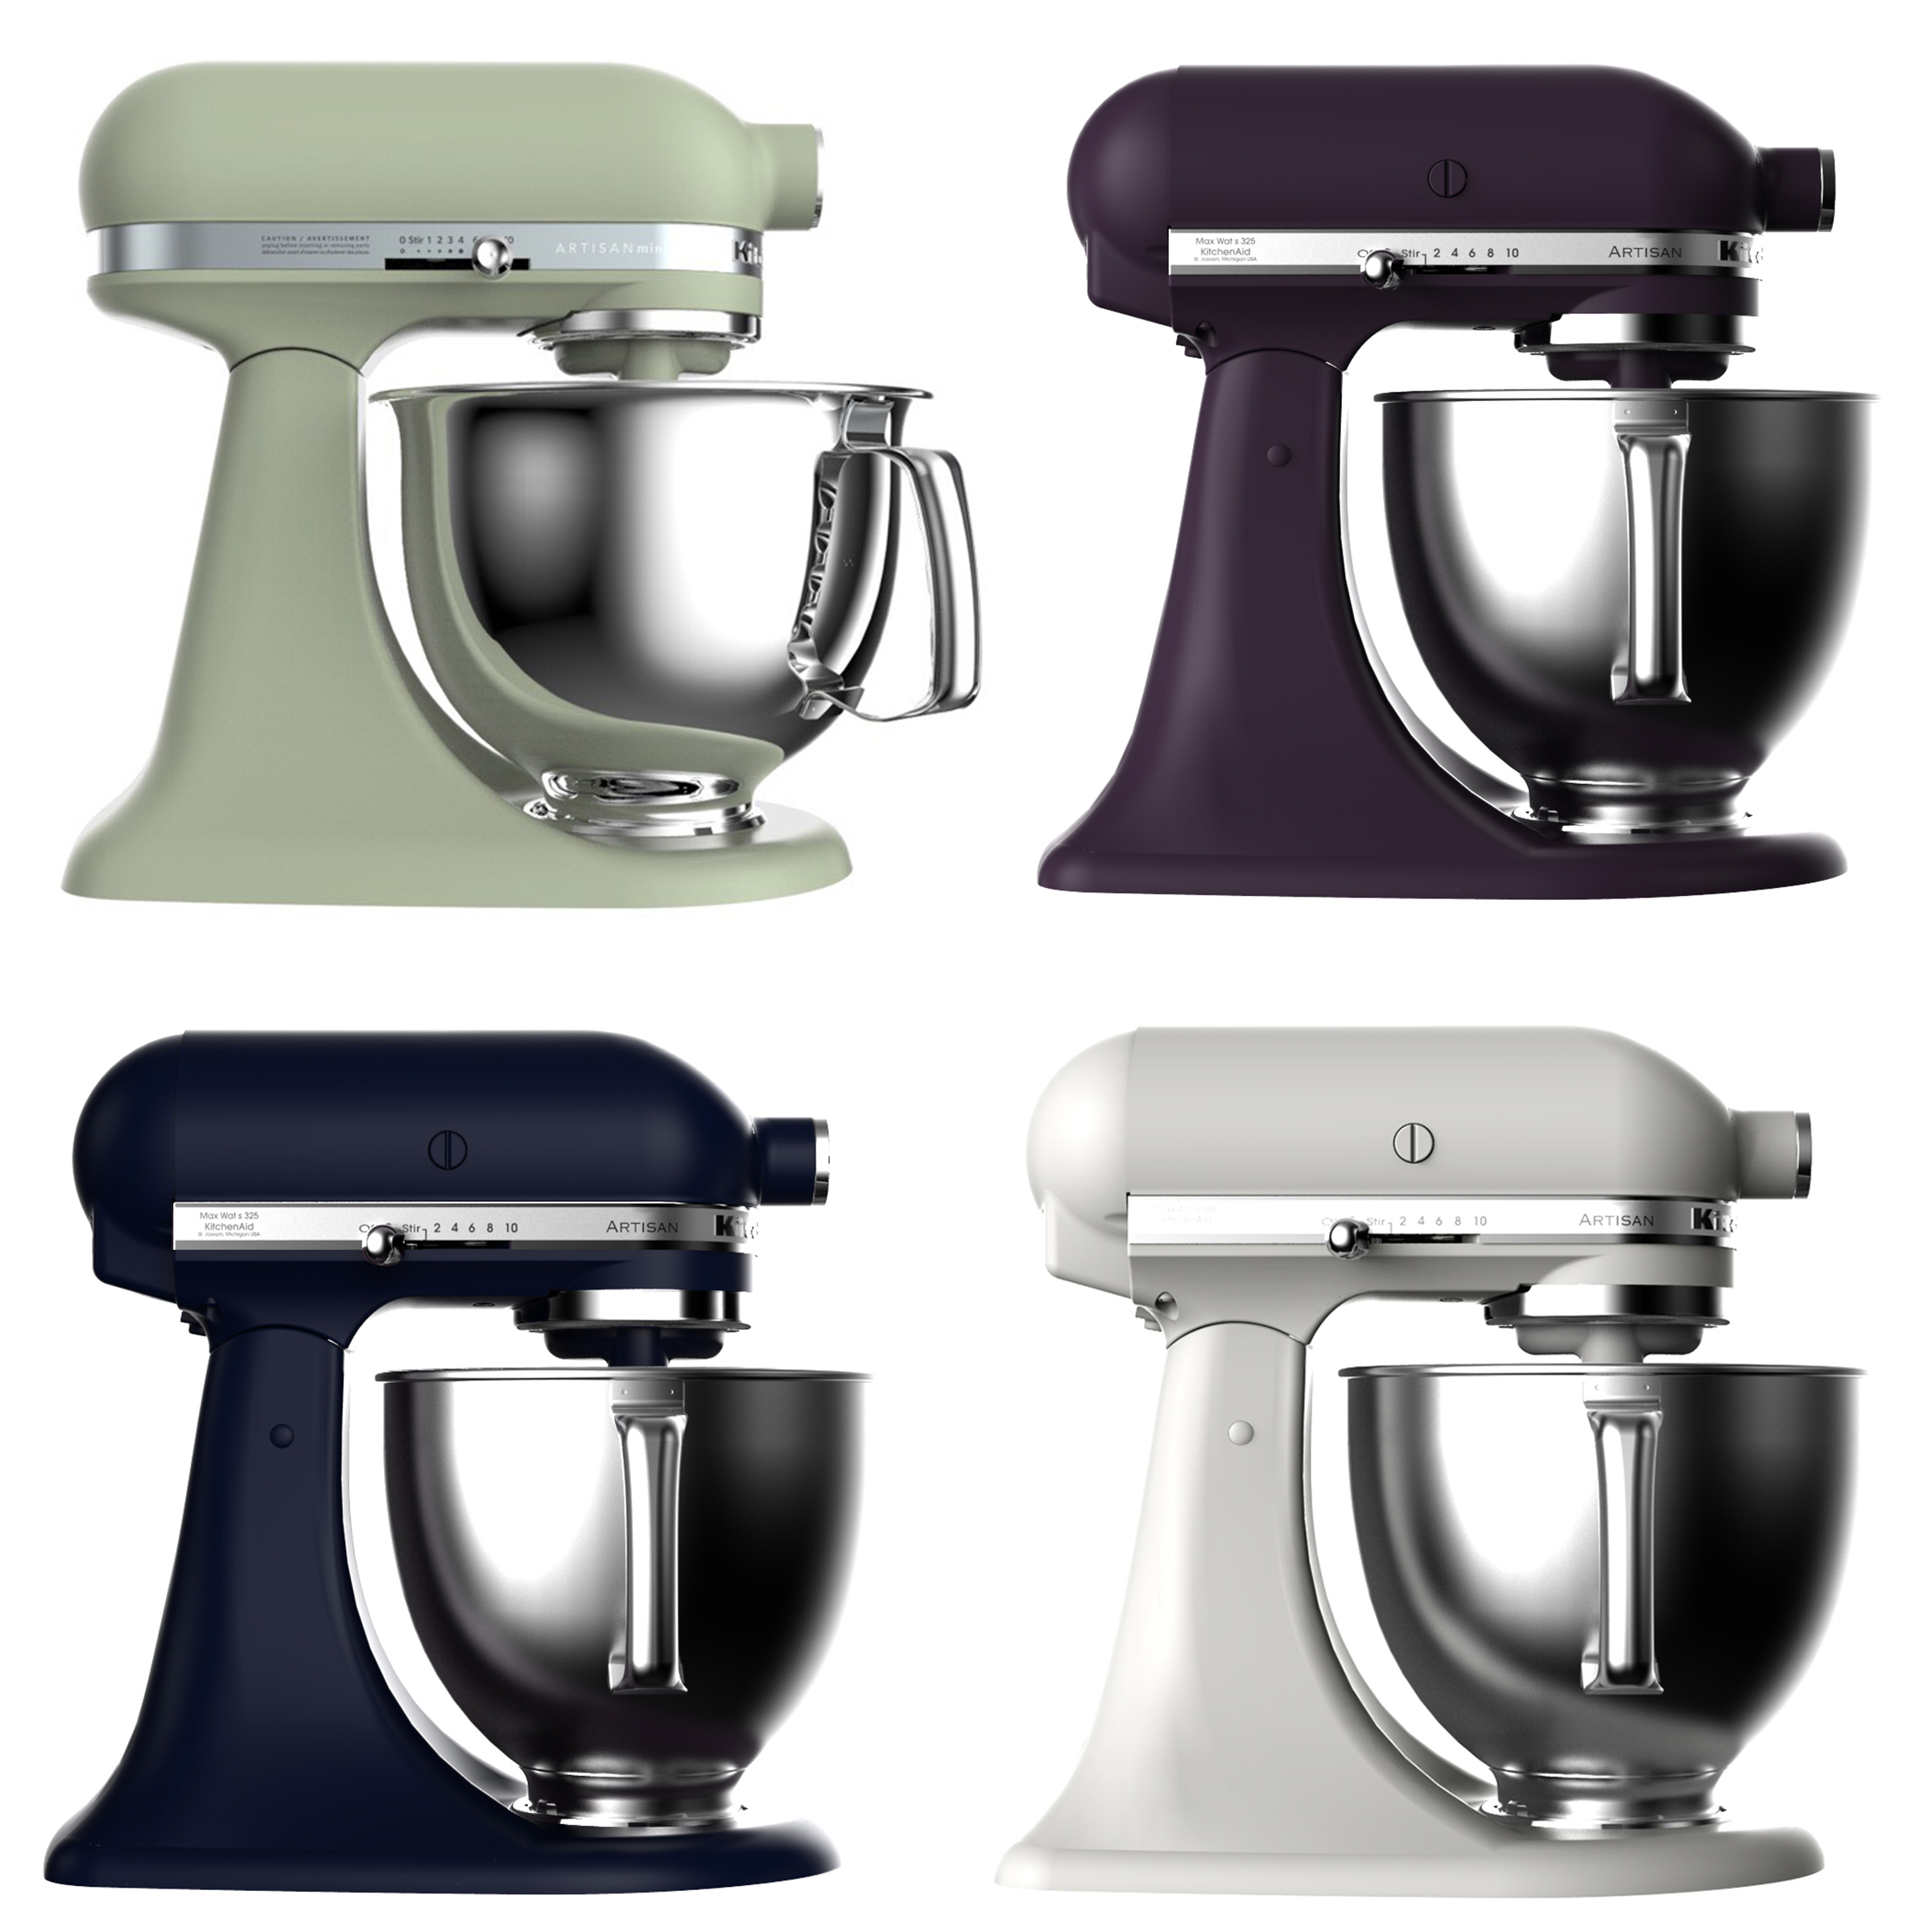 Kitchenaid Appliances Mixer Press Room  Get The Scoop And Dish It Out